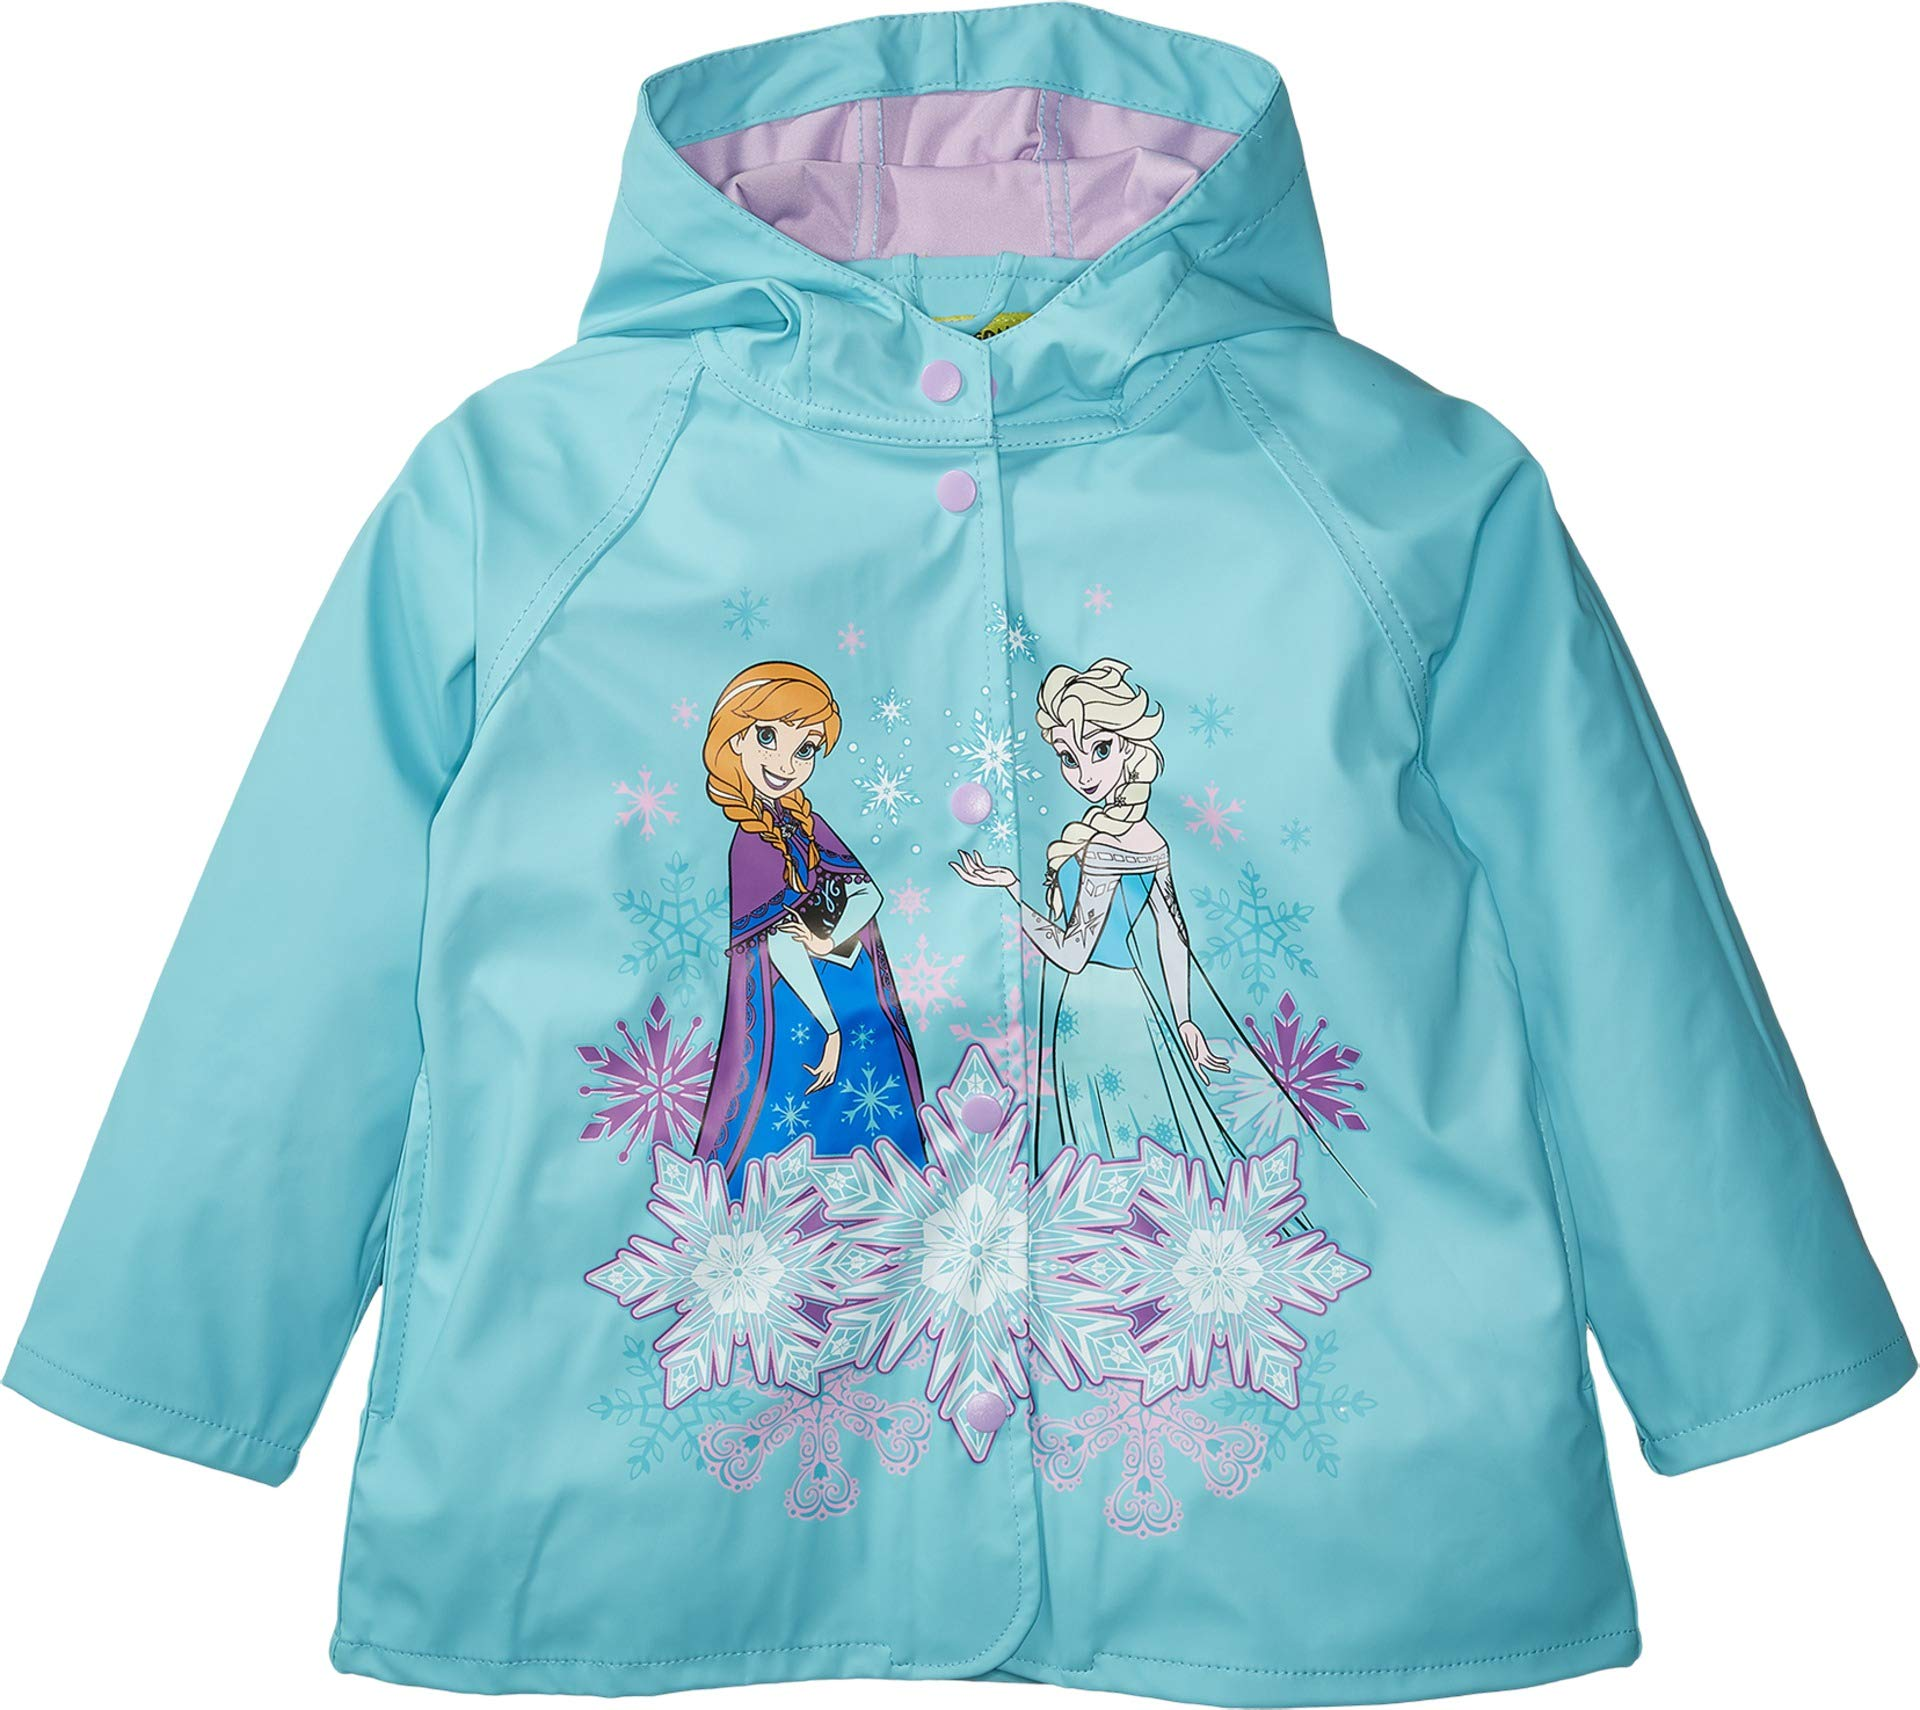 Western Chief Kids Frozen Rain Jacket, Blue, 5 by Western Chief (Image #1)